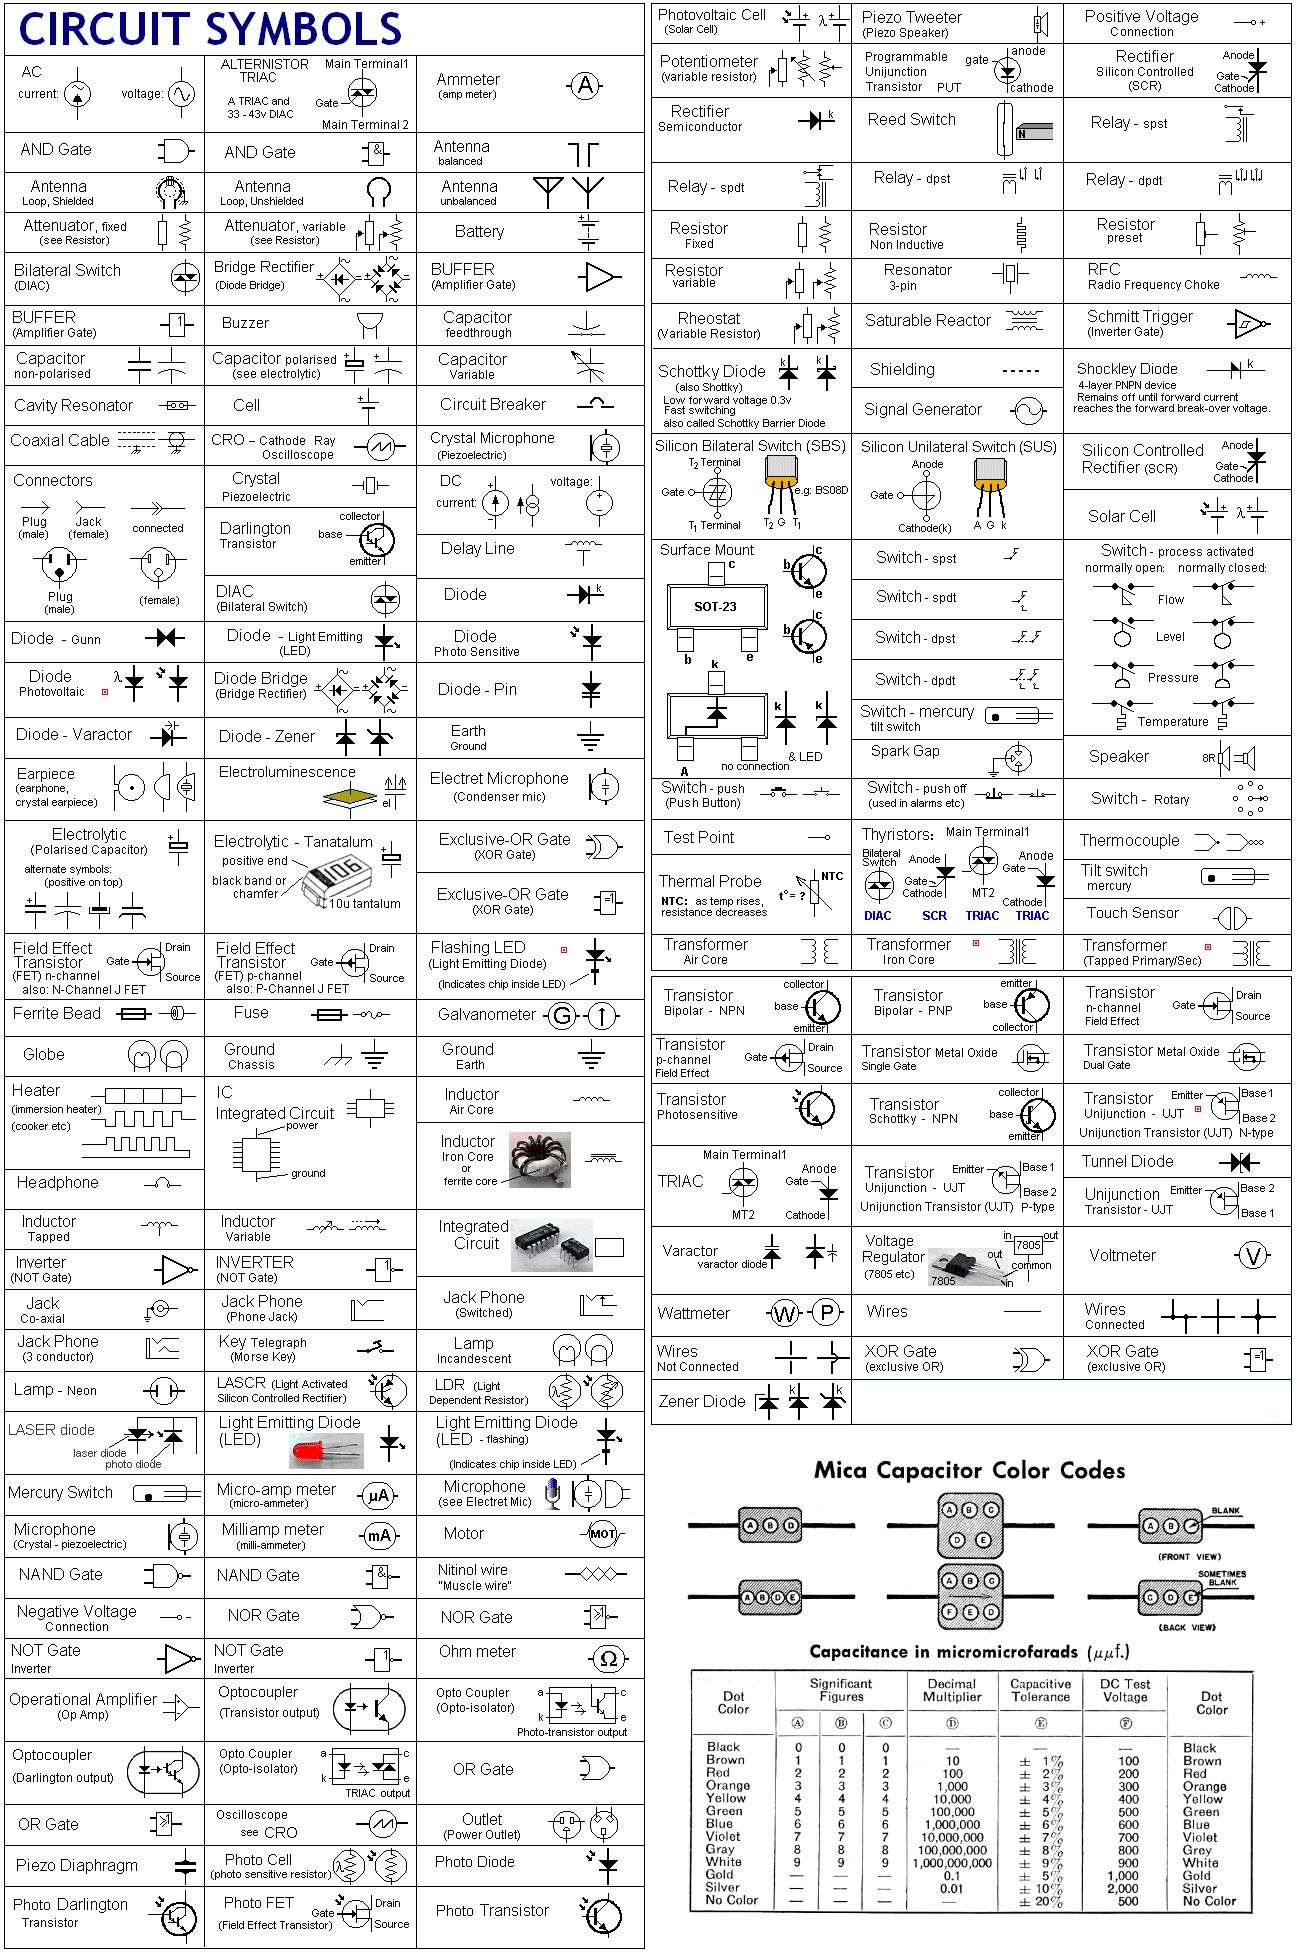 6c64fb84c8e162b28334051891c290f4 schematic symbols chart electric circuit symbols a considerably wiring diagram symbols chart at fashall.co